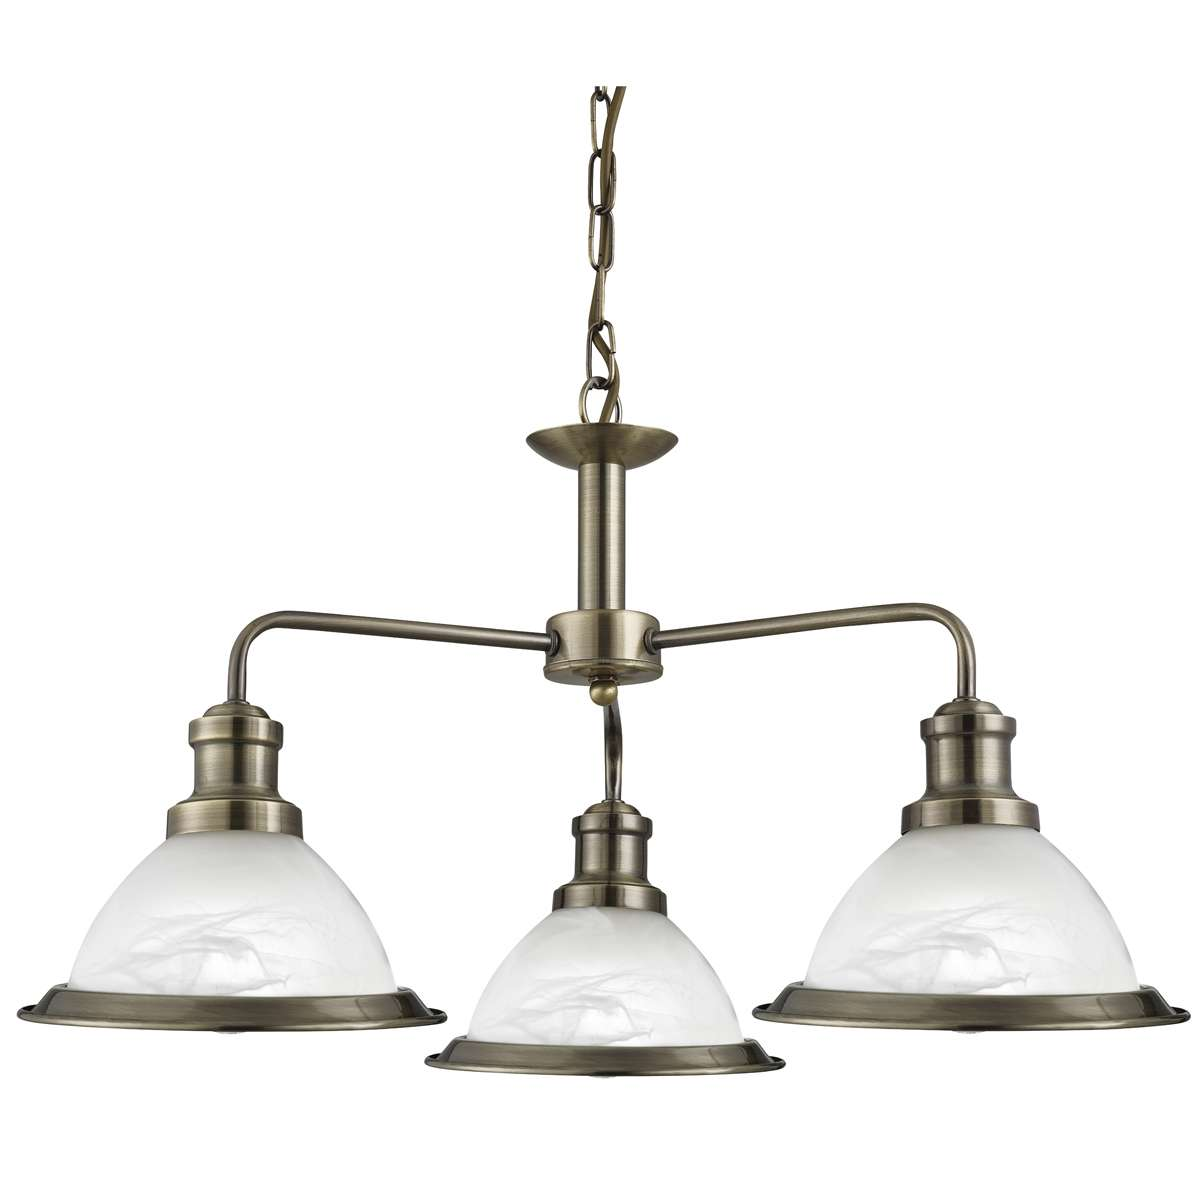 Bistro Antique Brass 3 Light Ceiling Fitting With Acid Glass Shades